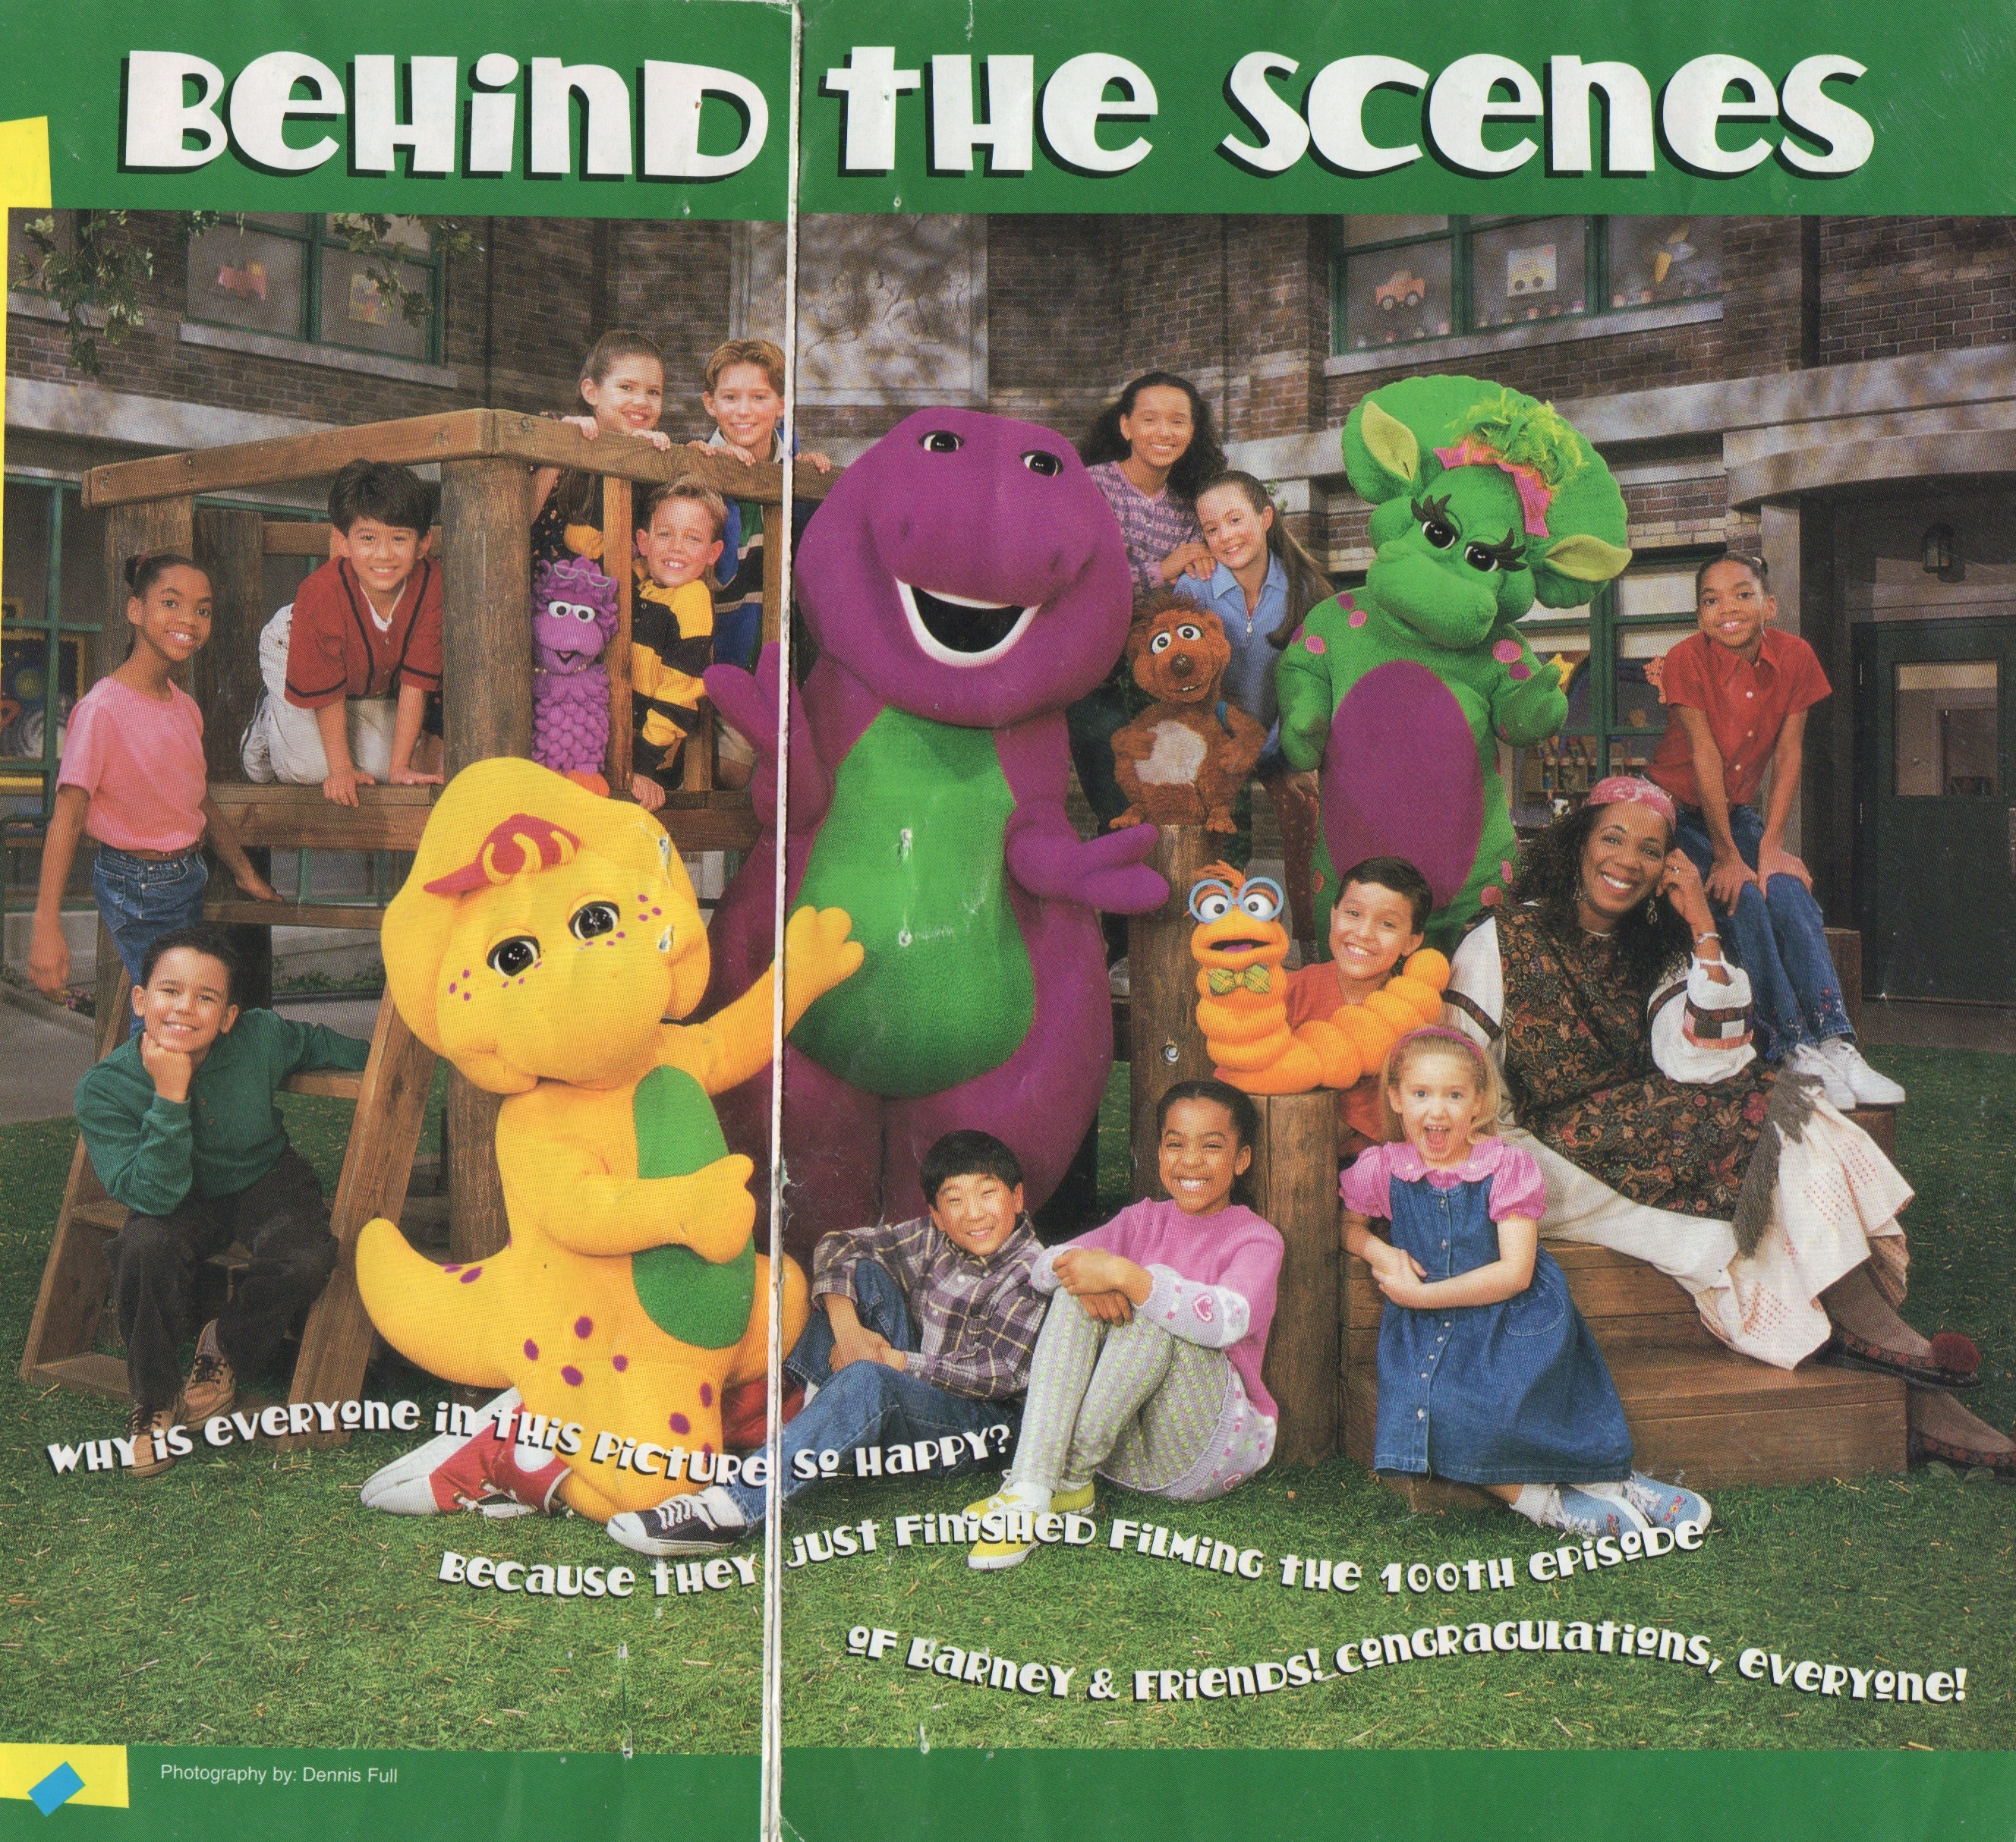 Barney and Friends: Season Five Cast